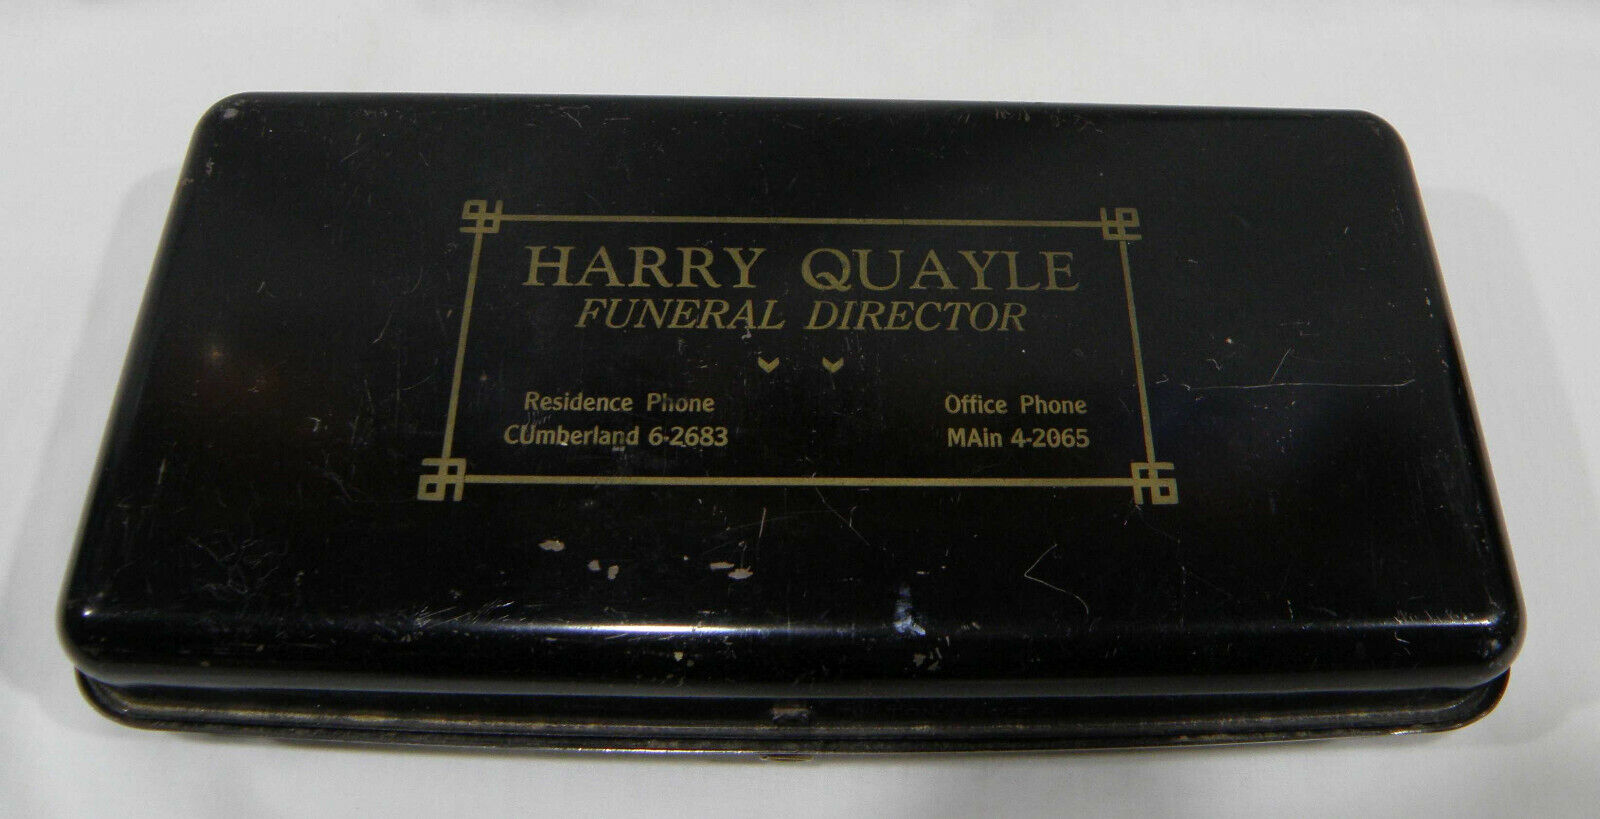 Vintage Harry Quayle Funeral Director Metal Documents Box Funeral Home Brooklyn  - $22.98